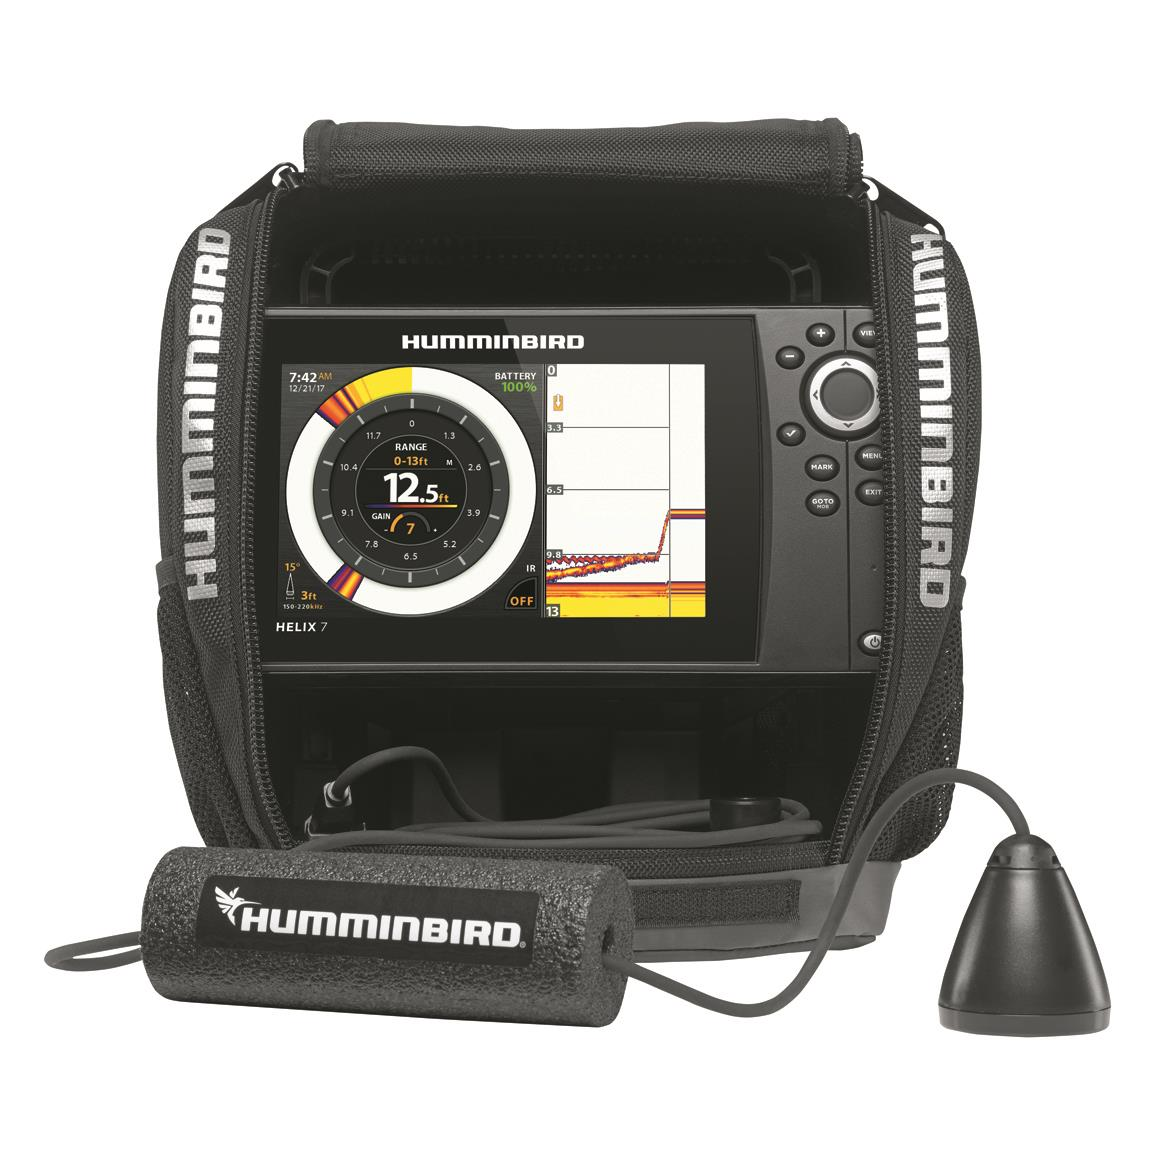 Humminbird ice helix 7 chirp gps g2 sonar fish finder for Ice fishing electronics